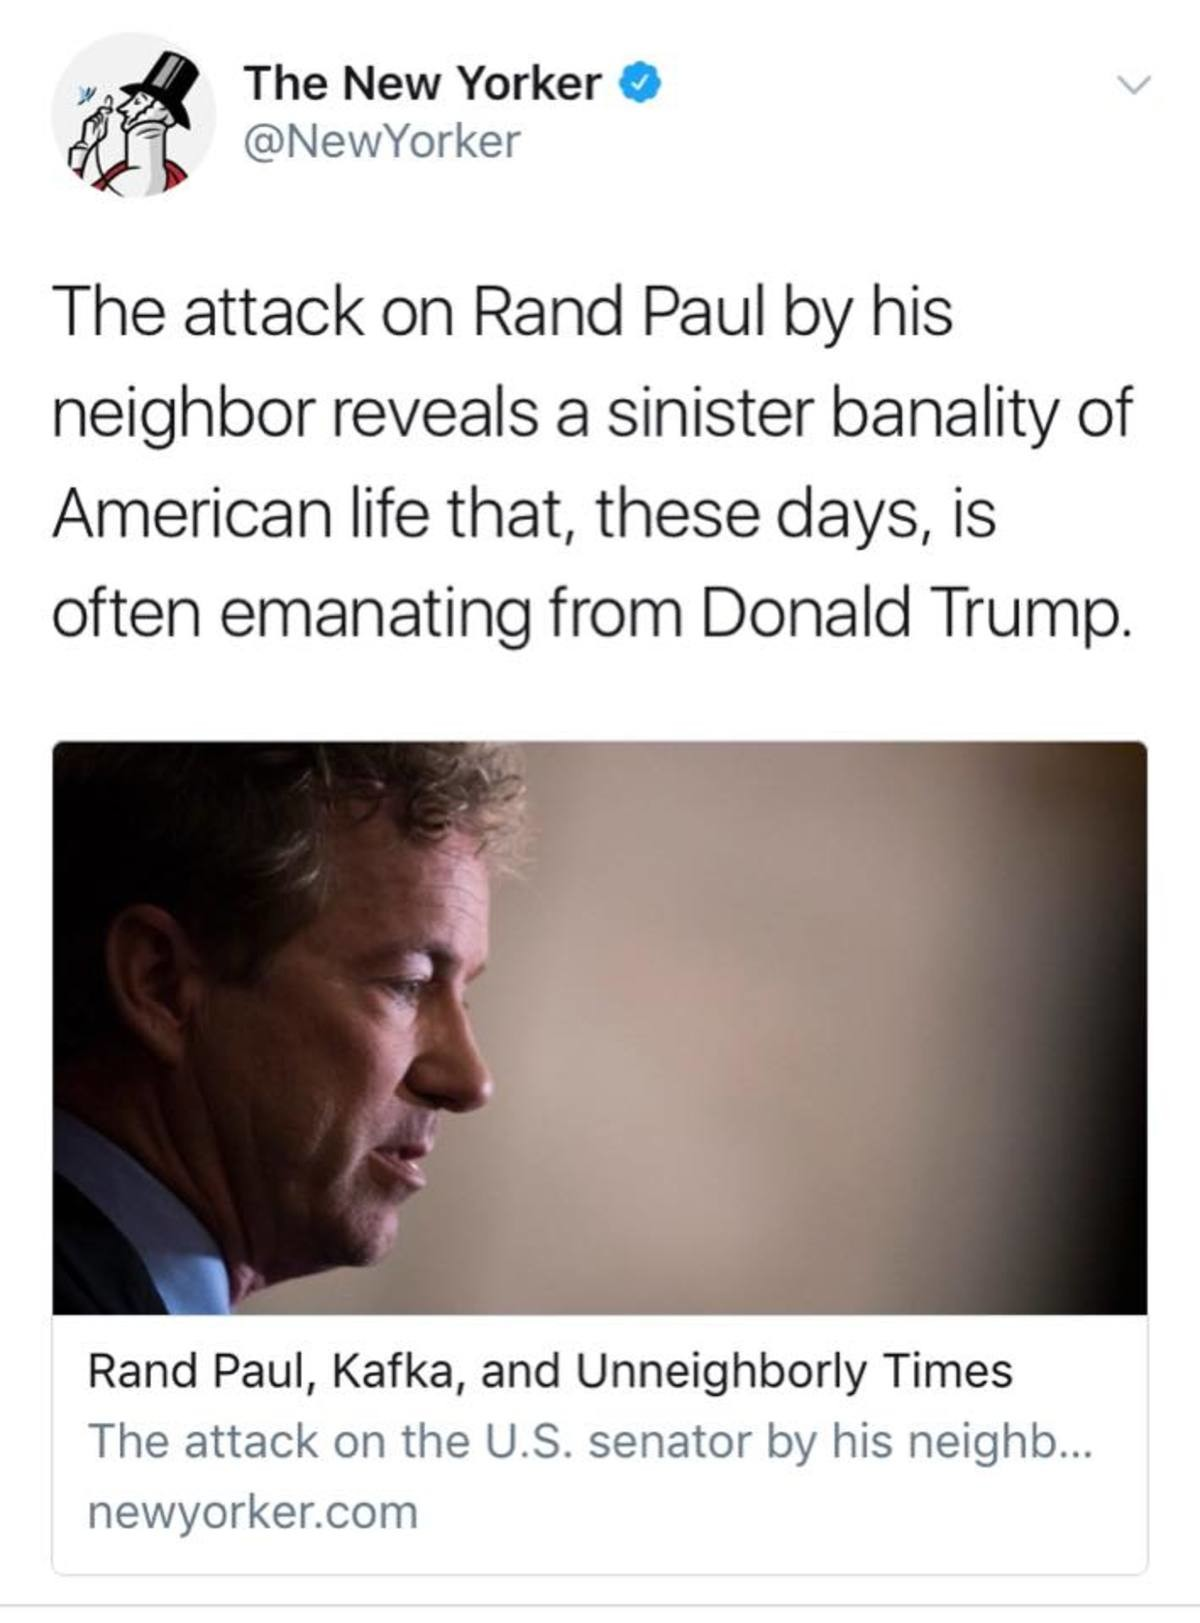 Rand Paul attacked? Trump's fault. . Newyorker Tint? attack '''] 'slantal Paul bl/ his neighbor reveals til sinister banality of American life that, these days,